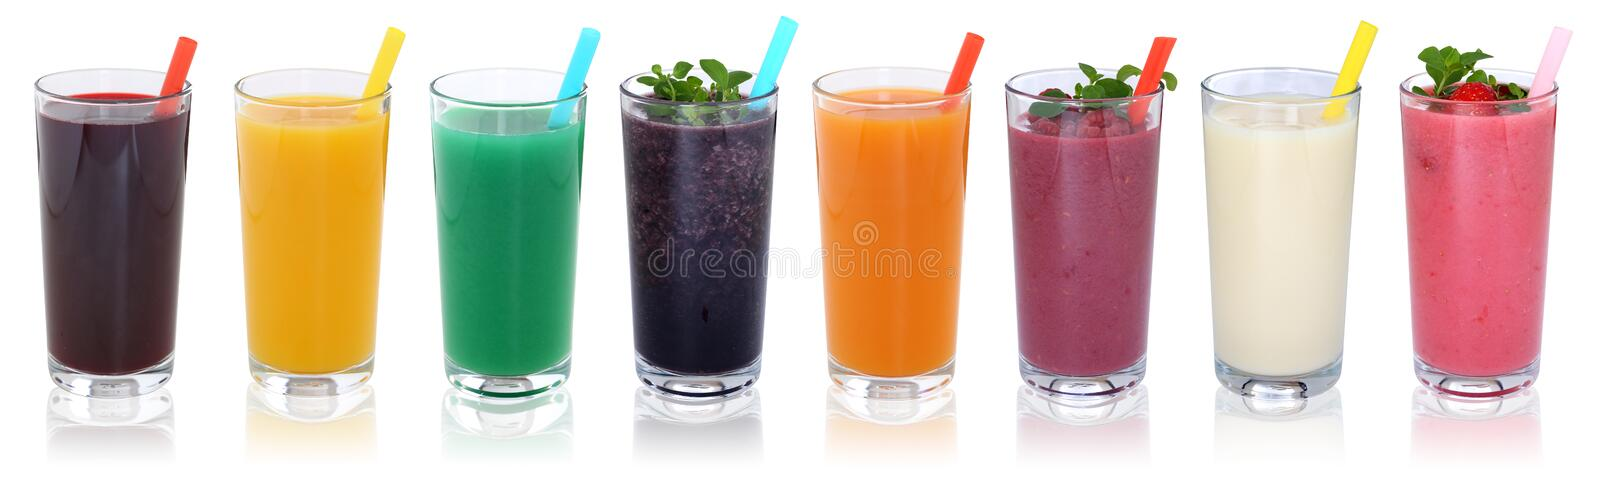 Smoothie fruit juice smoothies drinks with fruits in a row isola royalty free stock image